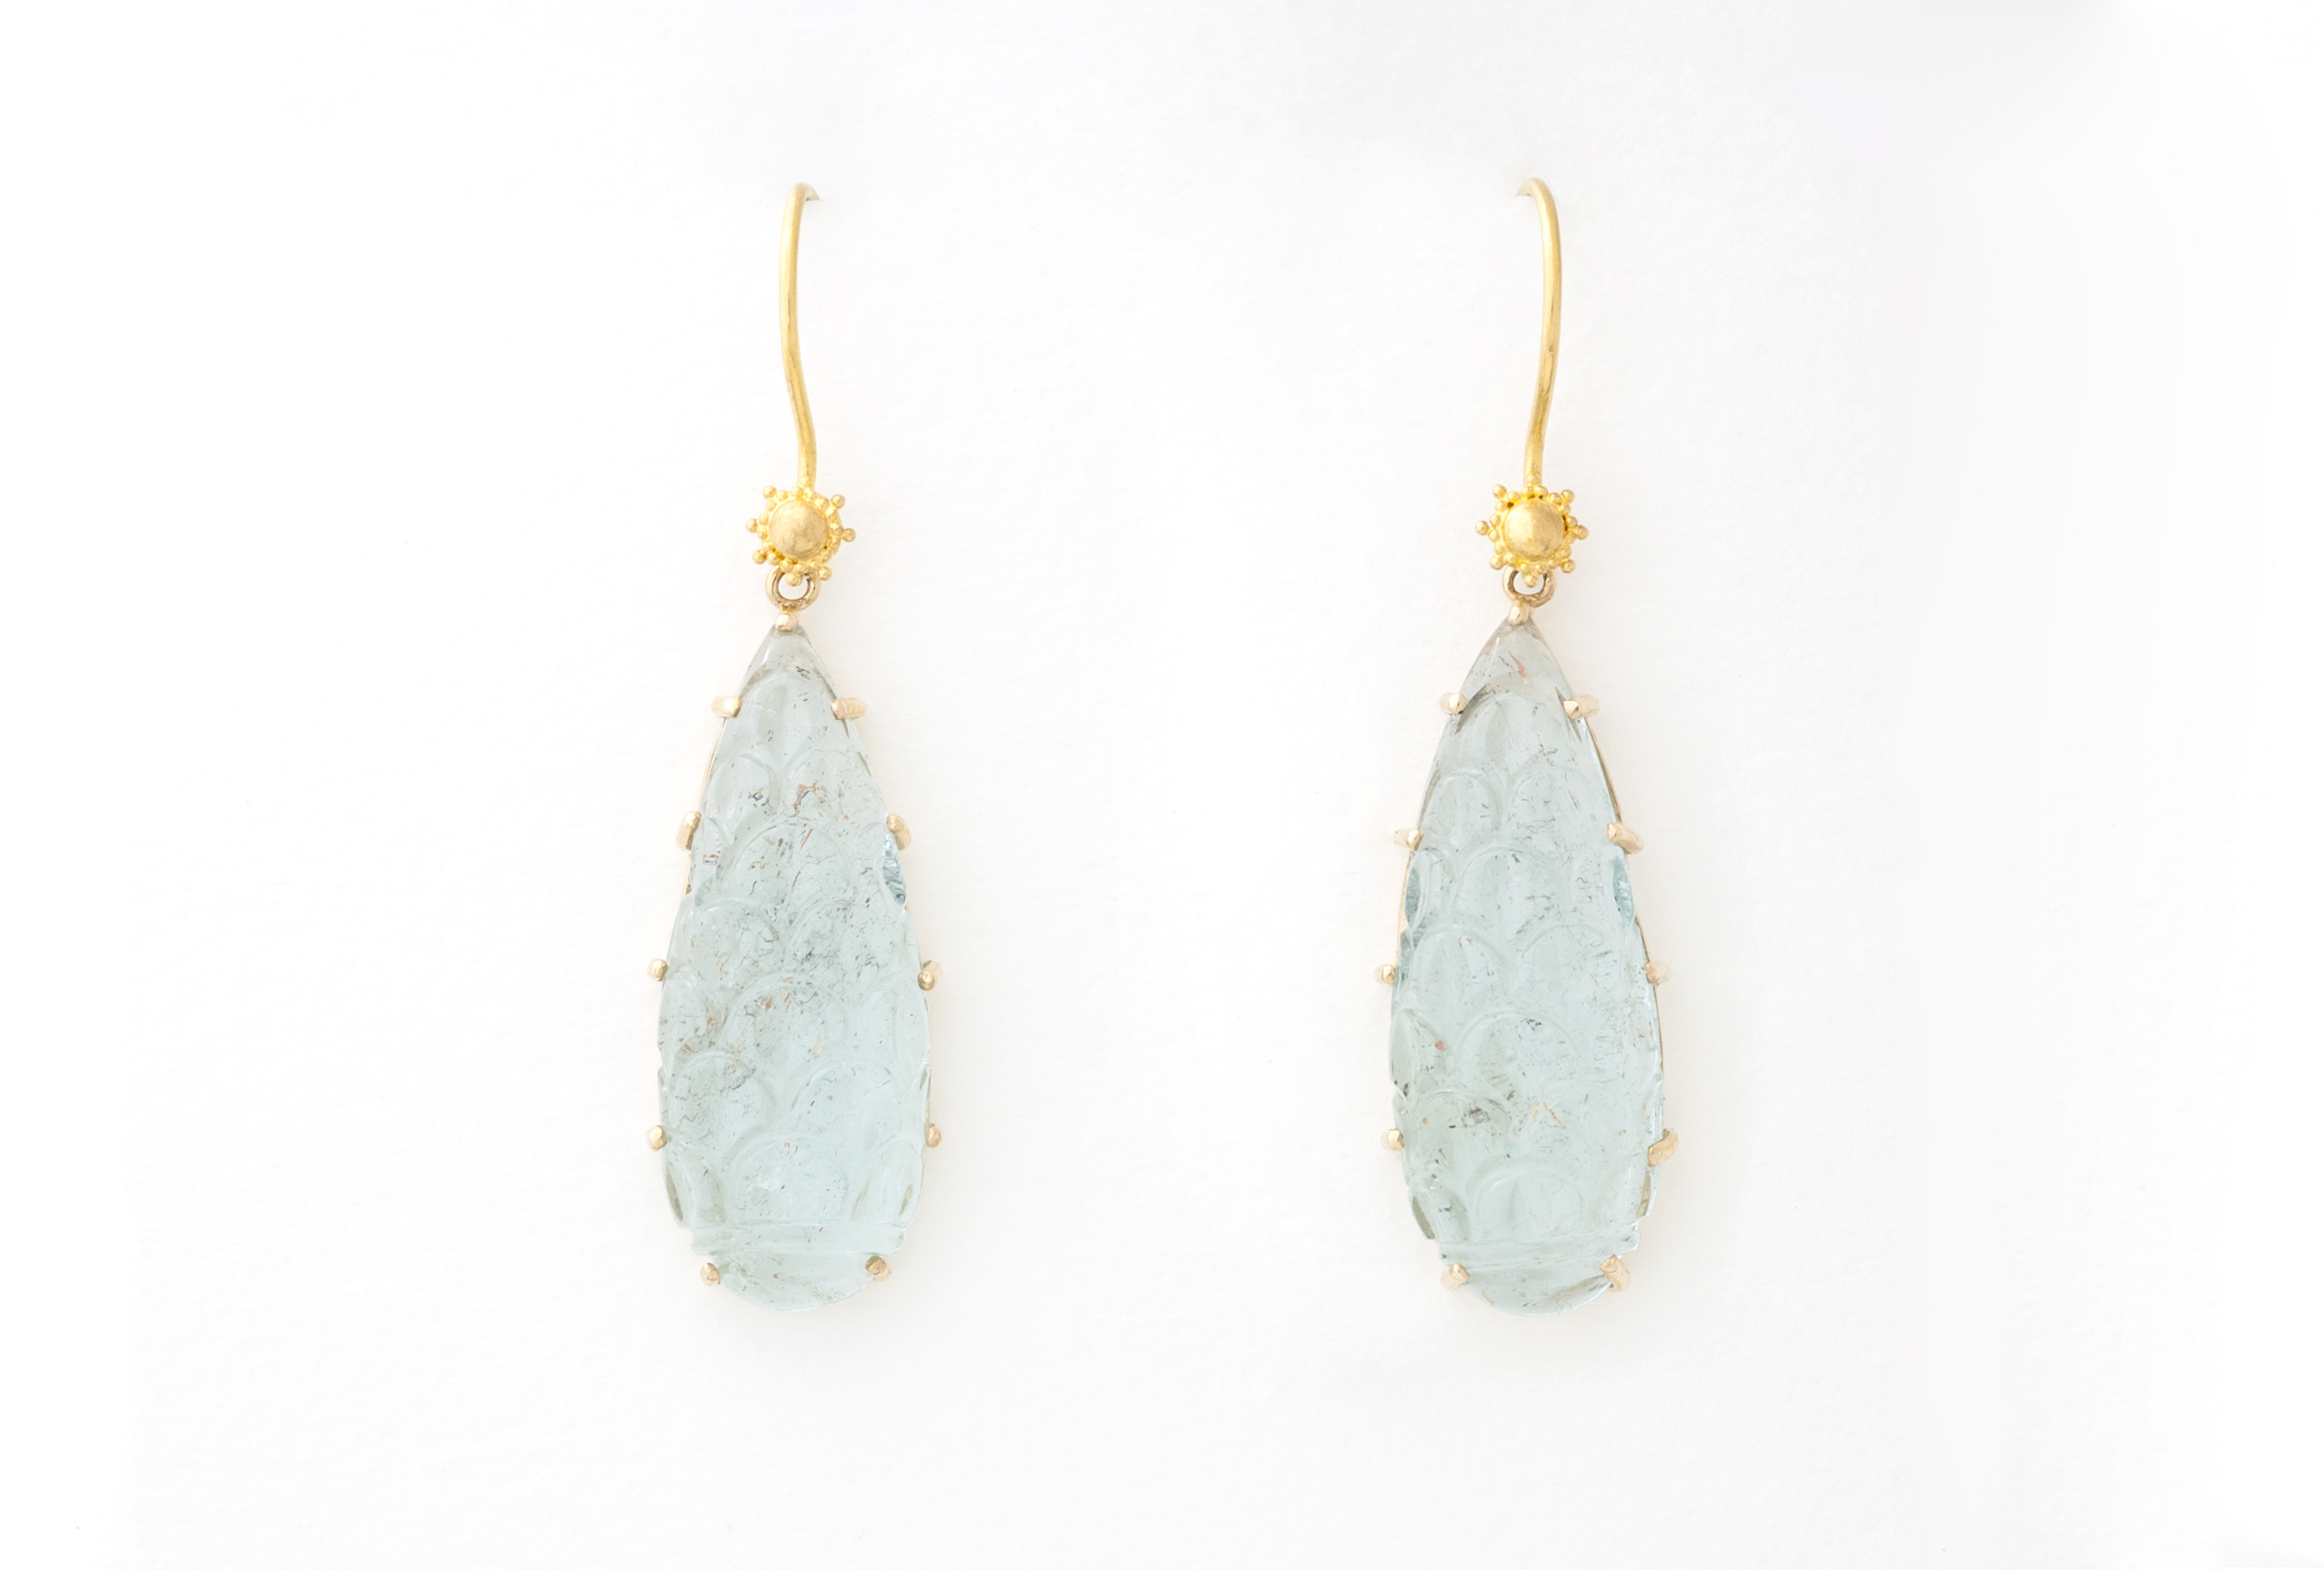 Carved Aquamarine earrings